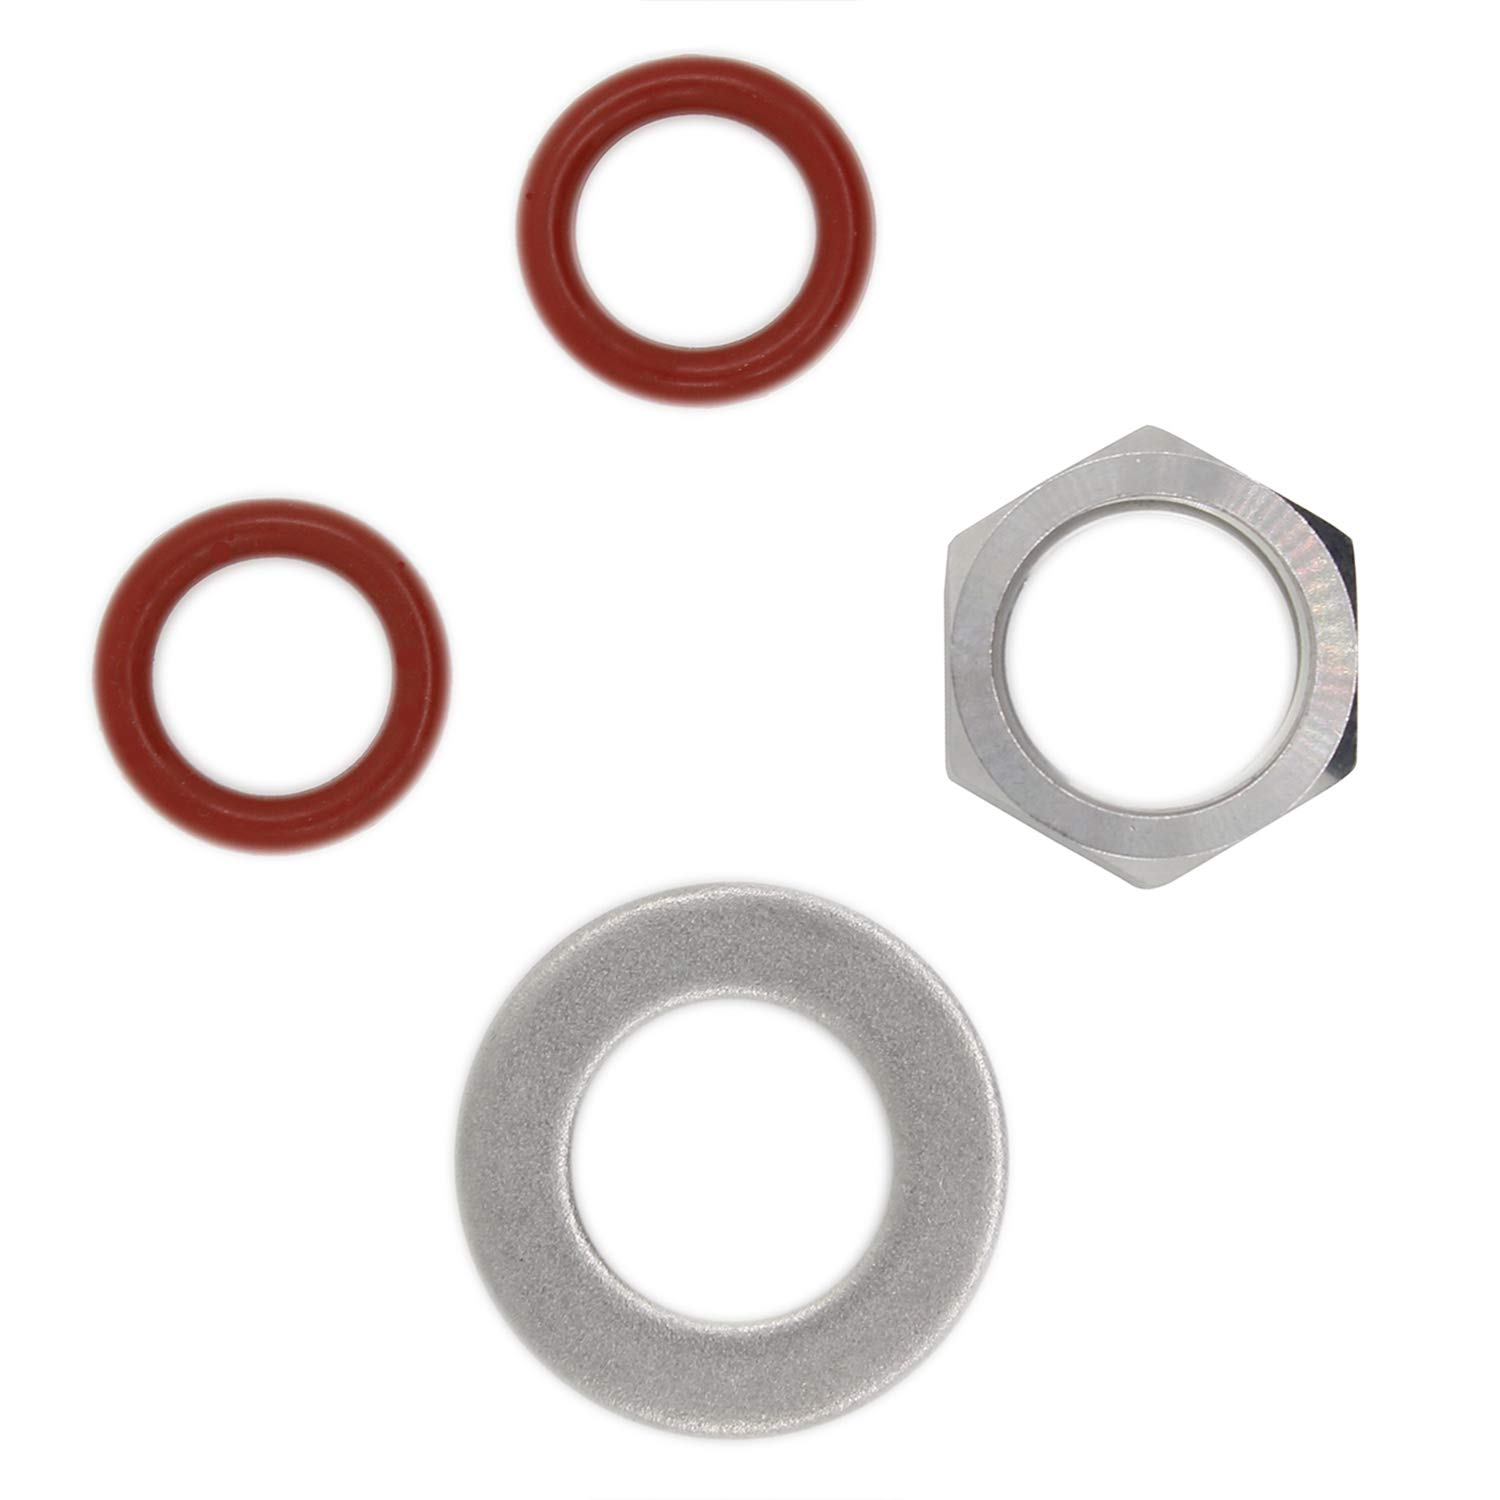 1/2 inch weldless Bulkhead Homebrew Fittings kit for thermowell Brew Kettle Thermometer Boiler Homebrew - Rubber o Ring Gasket Screw nut Set Lepai